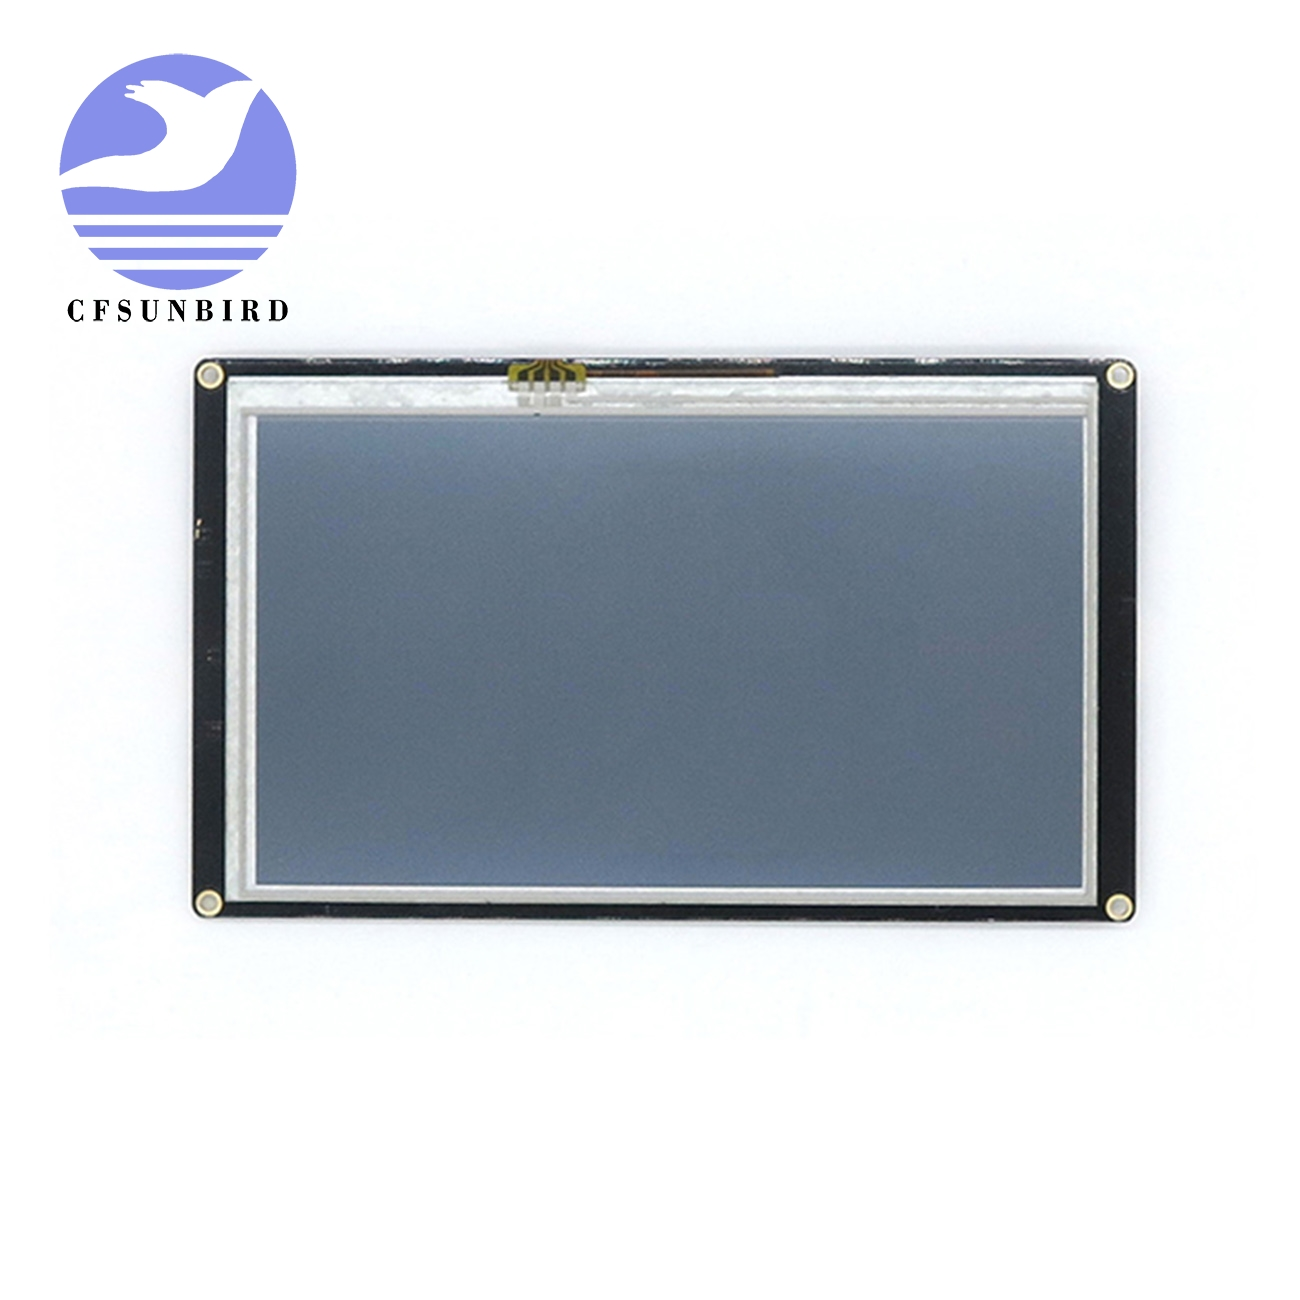 Image 2 - CFsunbird LCD Display Nextion Enhanced 7.0 HMI Touch TFT Display Raspberry Pi Lcd Controller Board NX8048K070-in LCD Modules from Electronic Components & Supplies